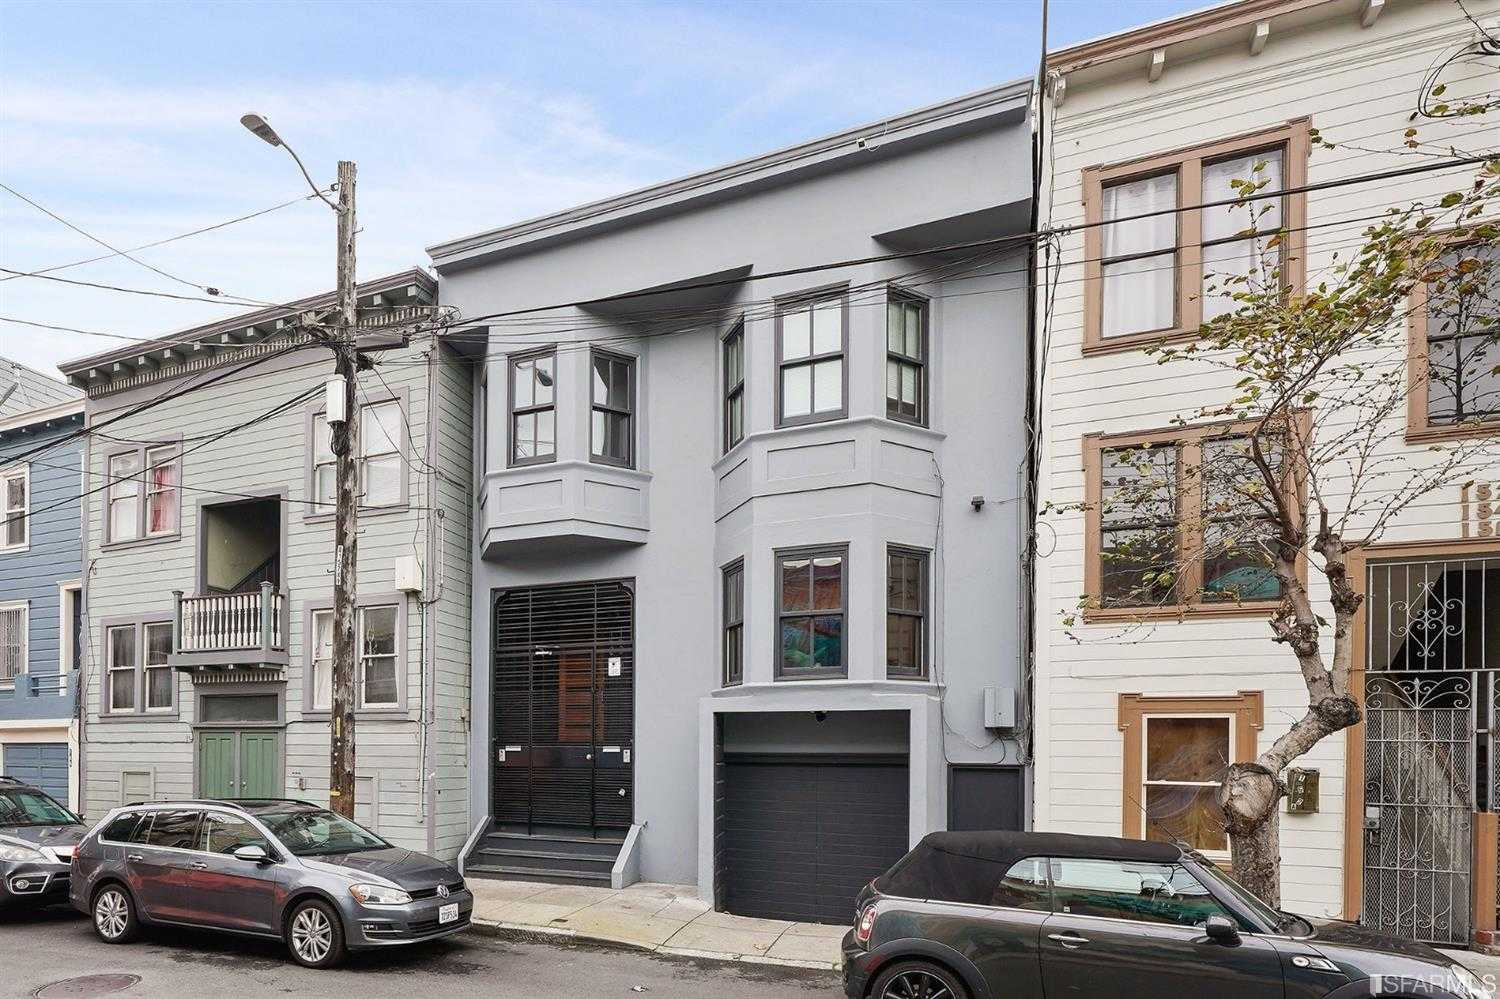 158 Langton St San Francisco, CA 94103